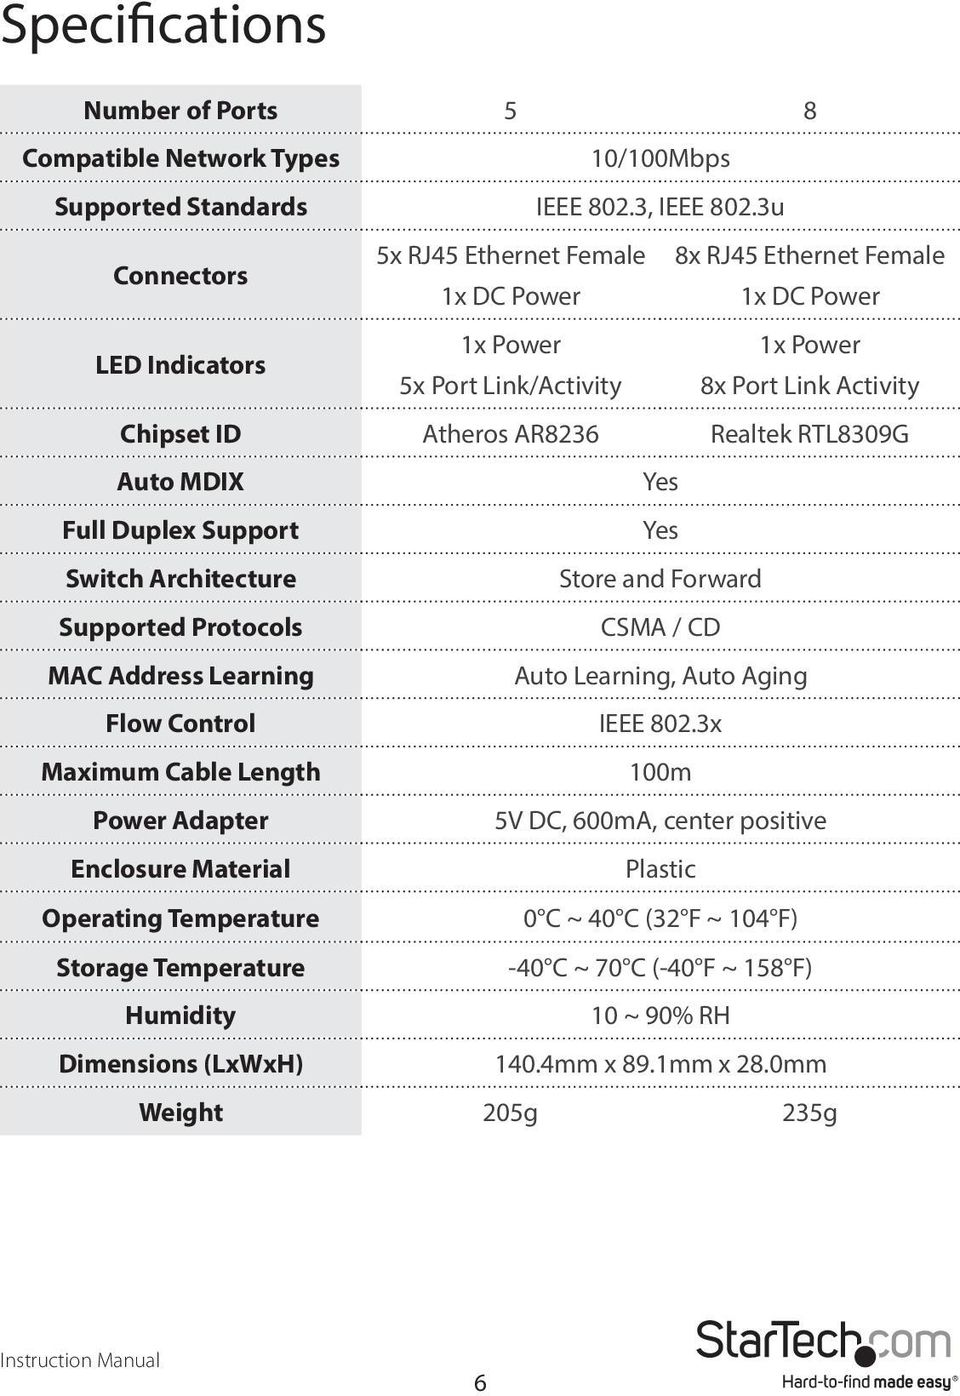 Realtek RTL8309G Auto MDIX Yes Full Duplex Support Yes Switch Architecture Store and Forward Supported Protocols CSMA / CD MAC Address Learning Auto Learning, Auto Aging Flow Control IEEE 802.